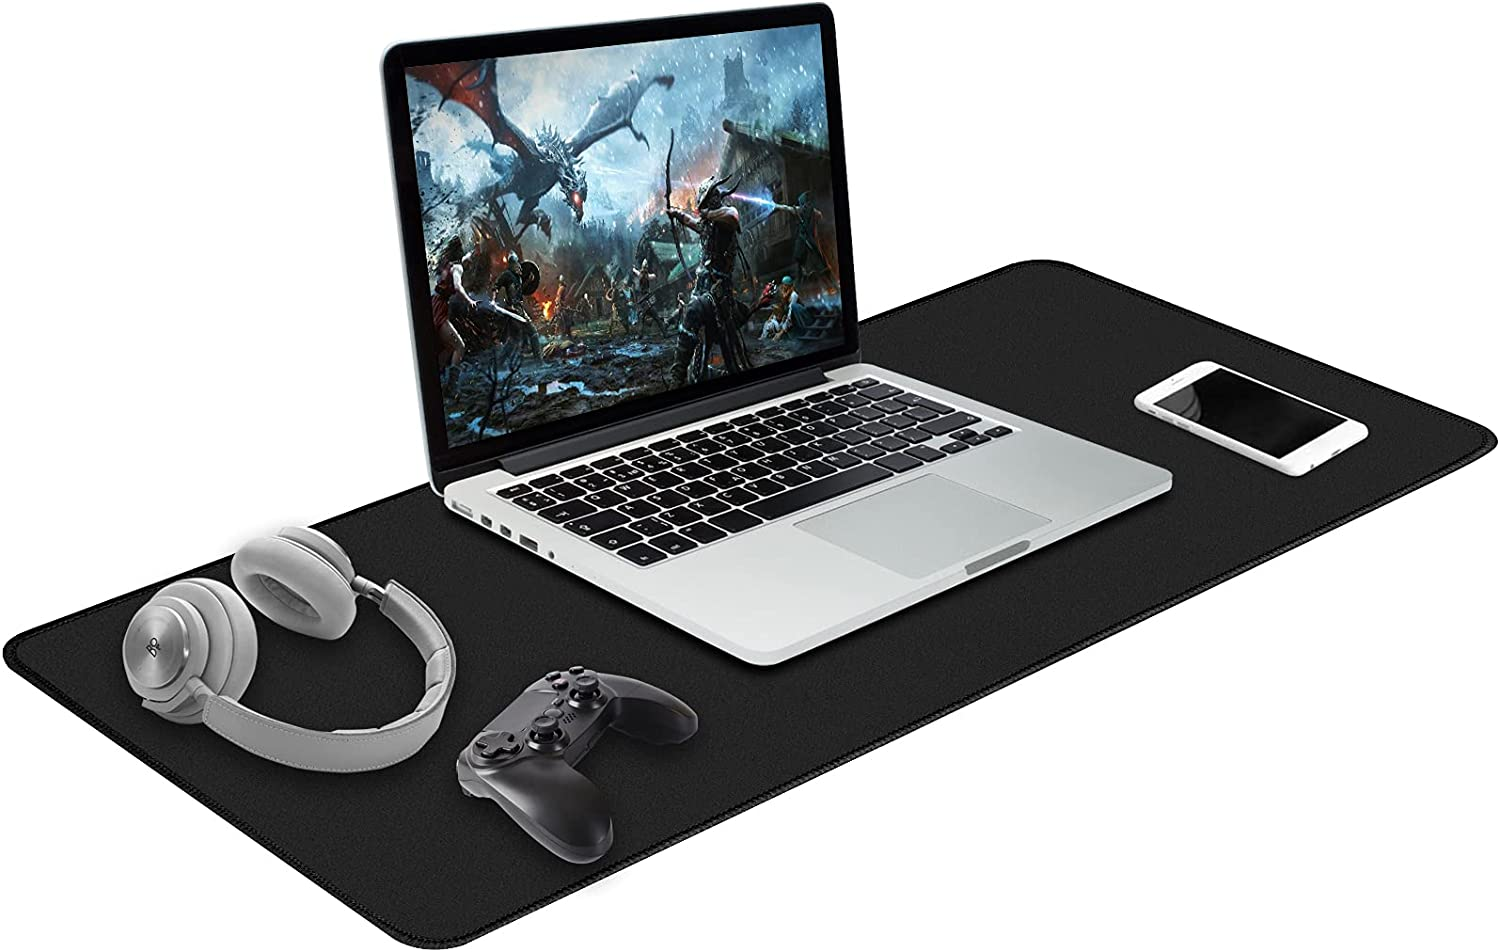 Hvanhome Large Mouse Pad, (35.4 x 15.7in, Black) Extended Gaming Mousepad with Non-Slip Rubber Base, Computer Keyboard Mouse Mat with Superior Stitched Edges, Desk Pad Protector for Office and Home